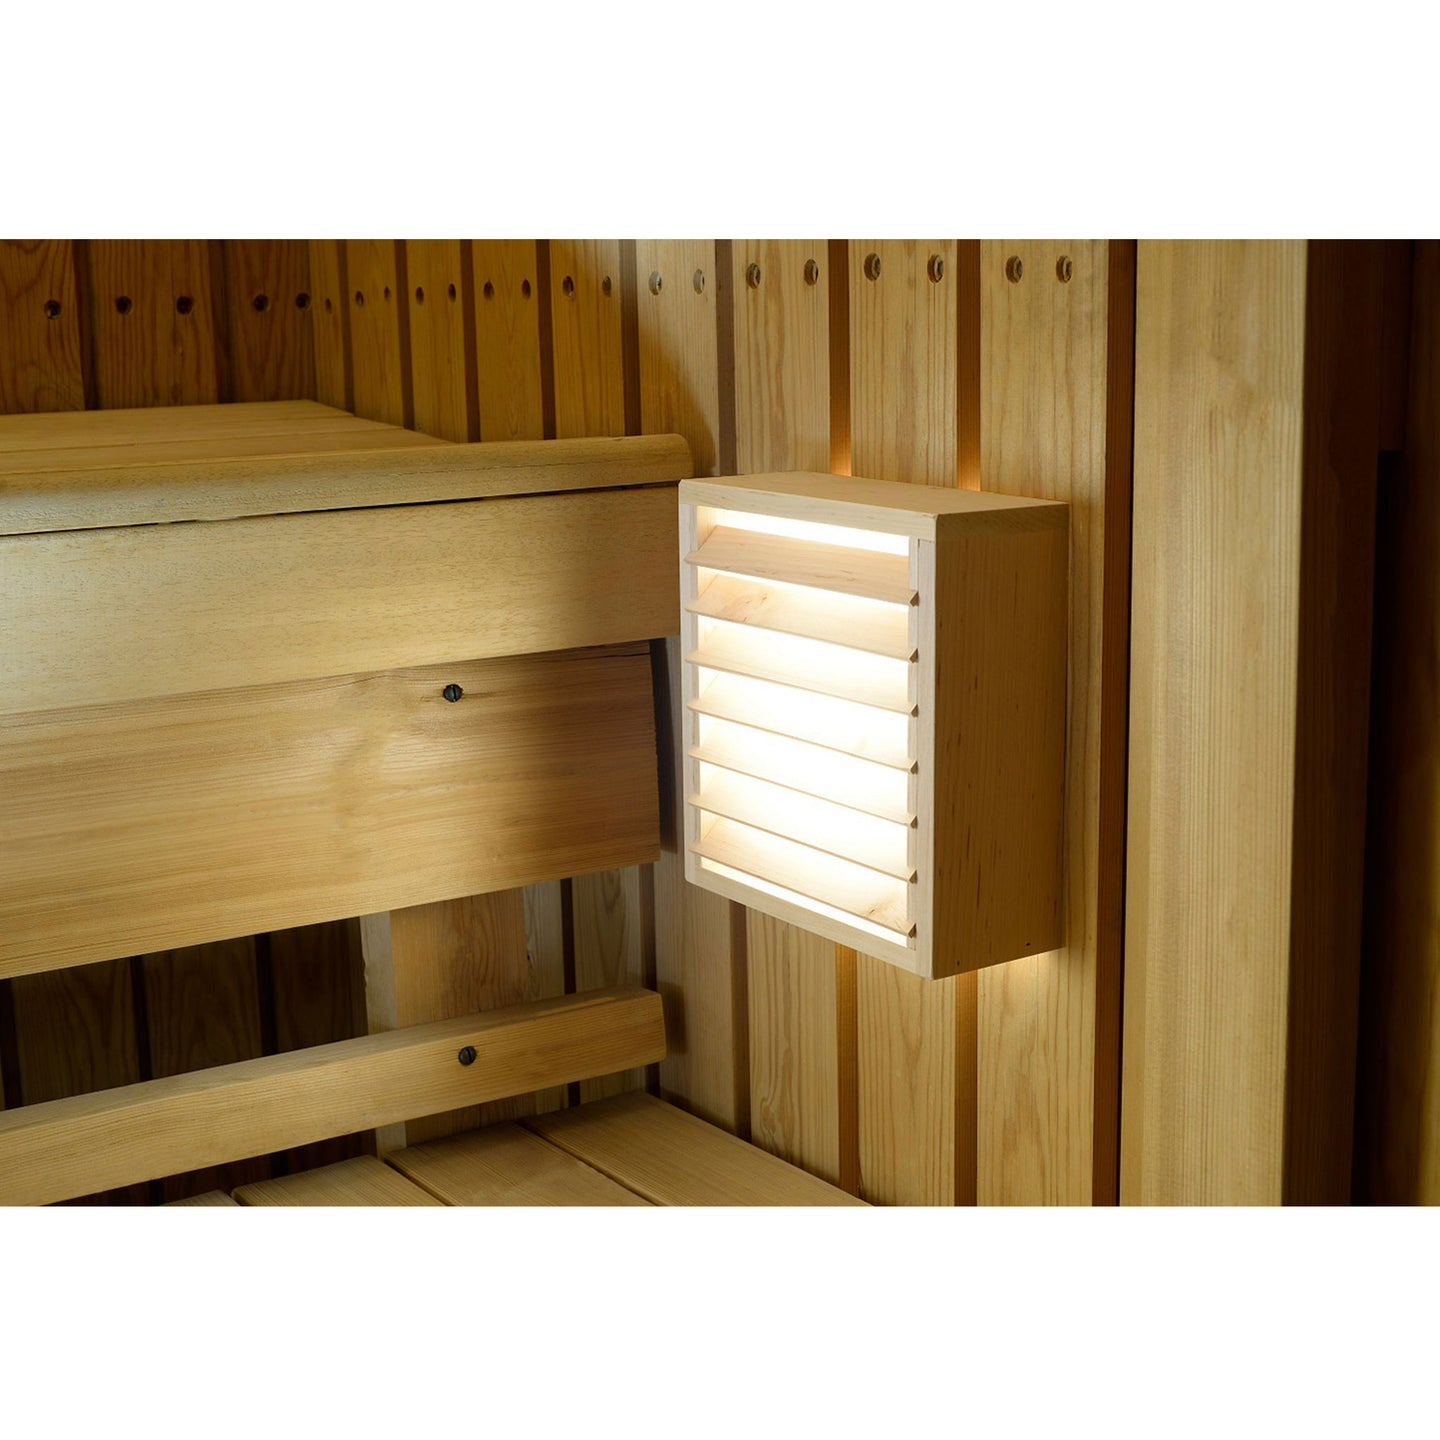 LEDIFY KUIVI LED light for sauna KUIVI neutral Sauna Light Finnmark Sauna